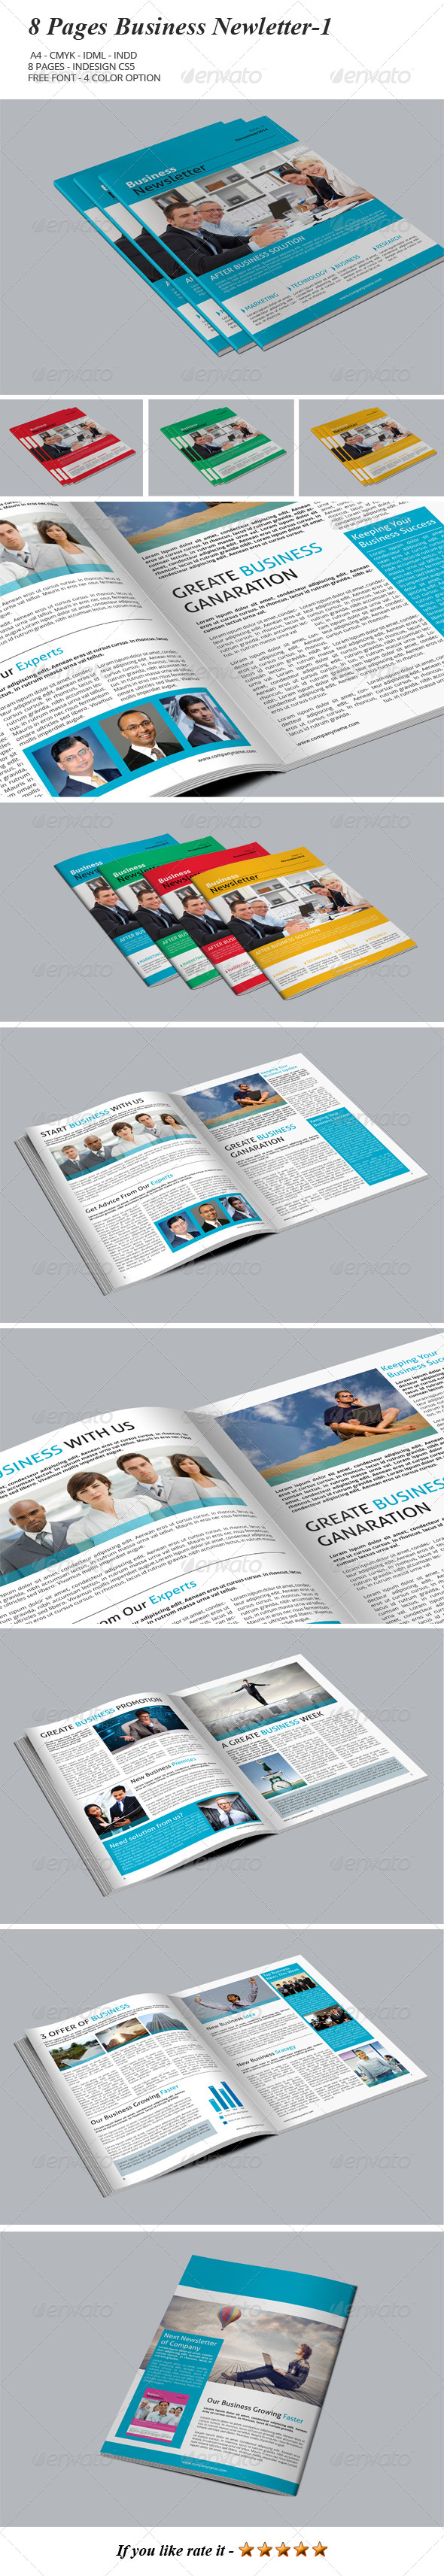 GraphicRiver 8 Pages Business Newsletter-1 8017119